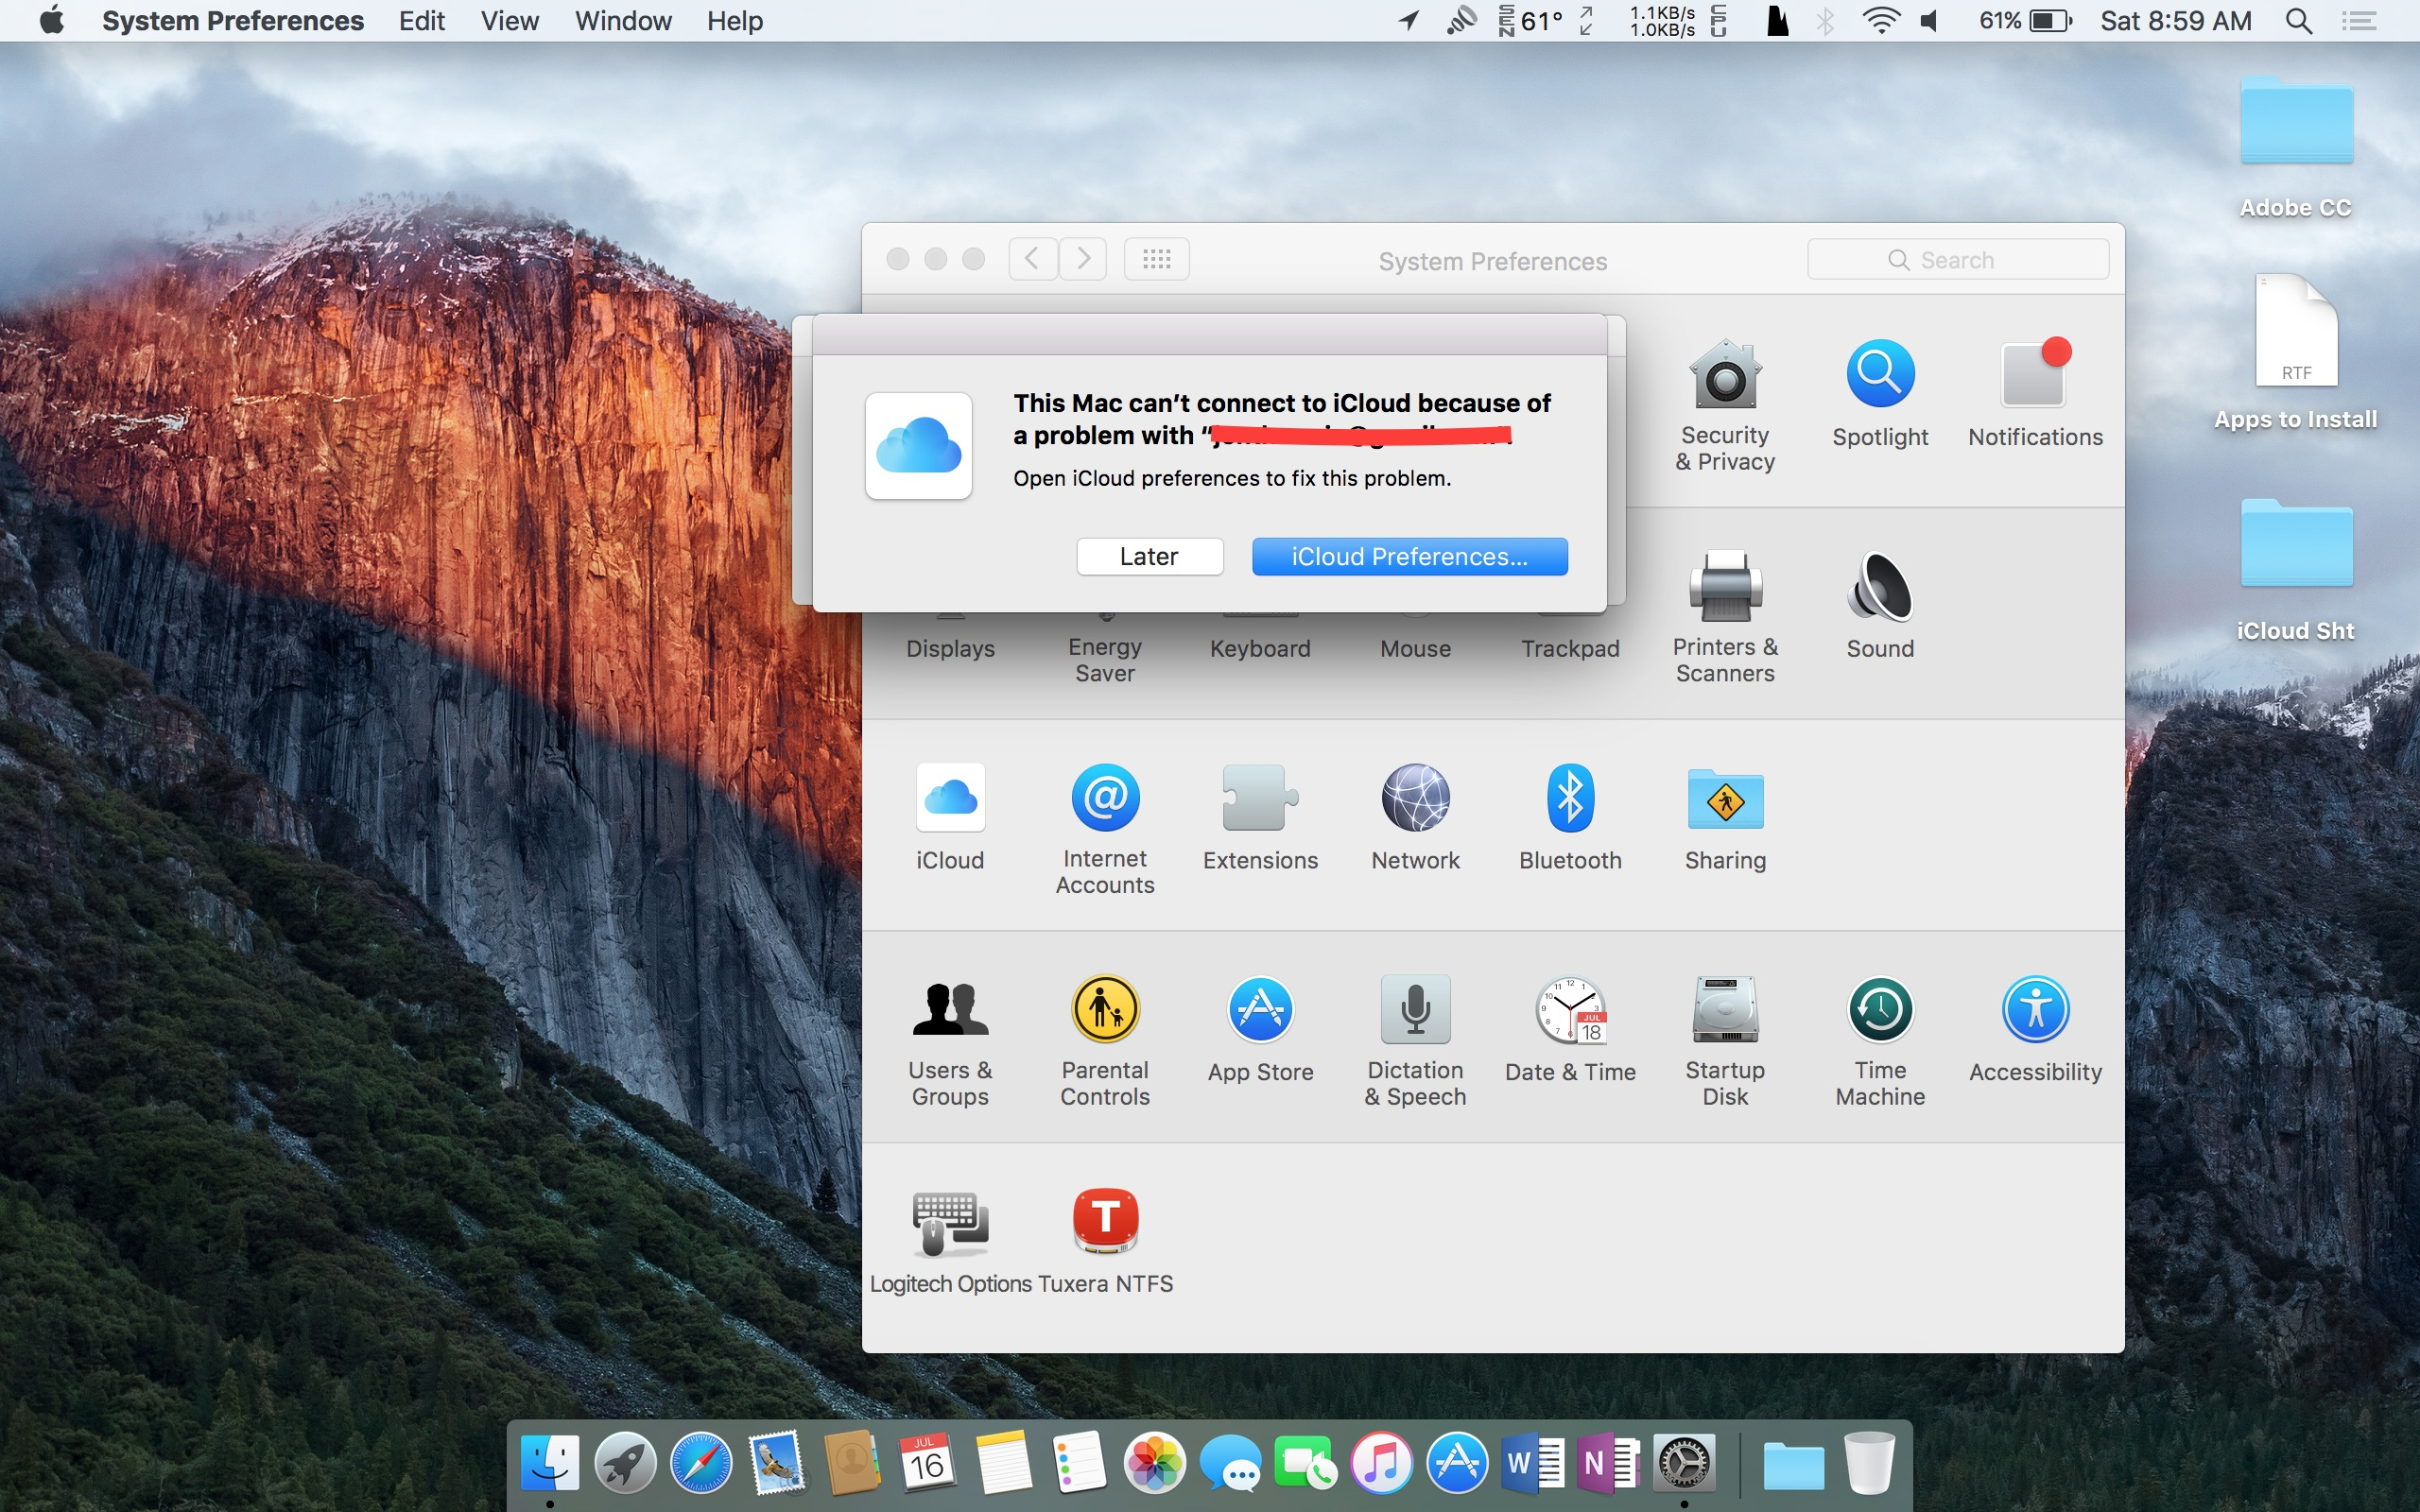 iCloud keeps asking for Password on Mac a… - Apple Community